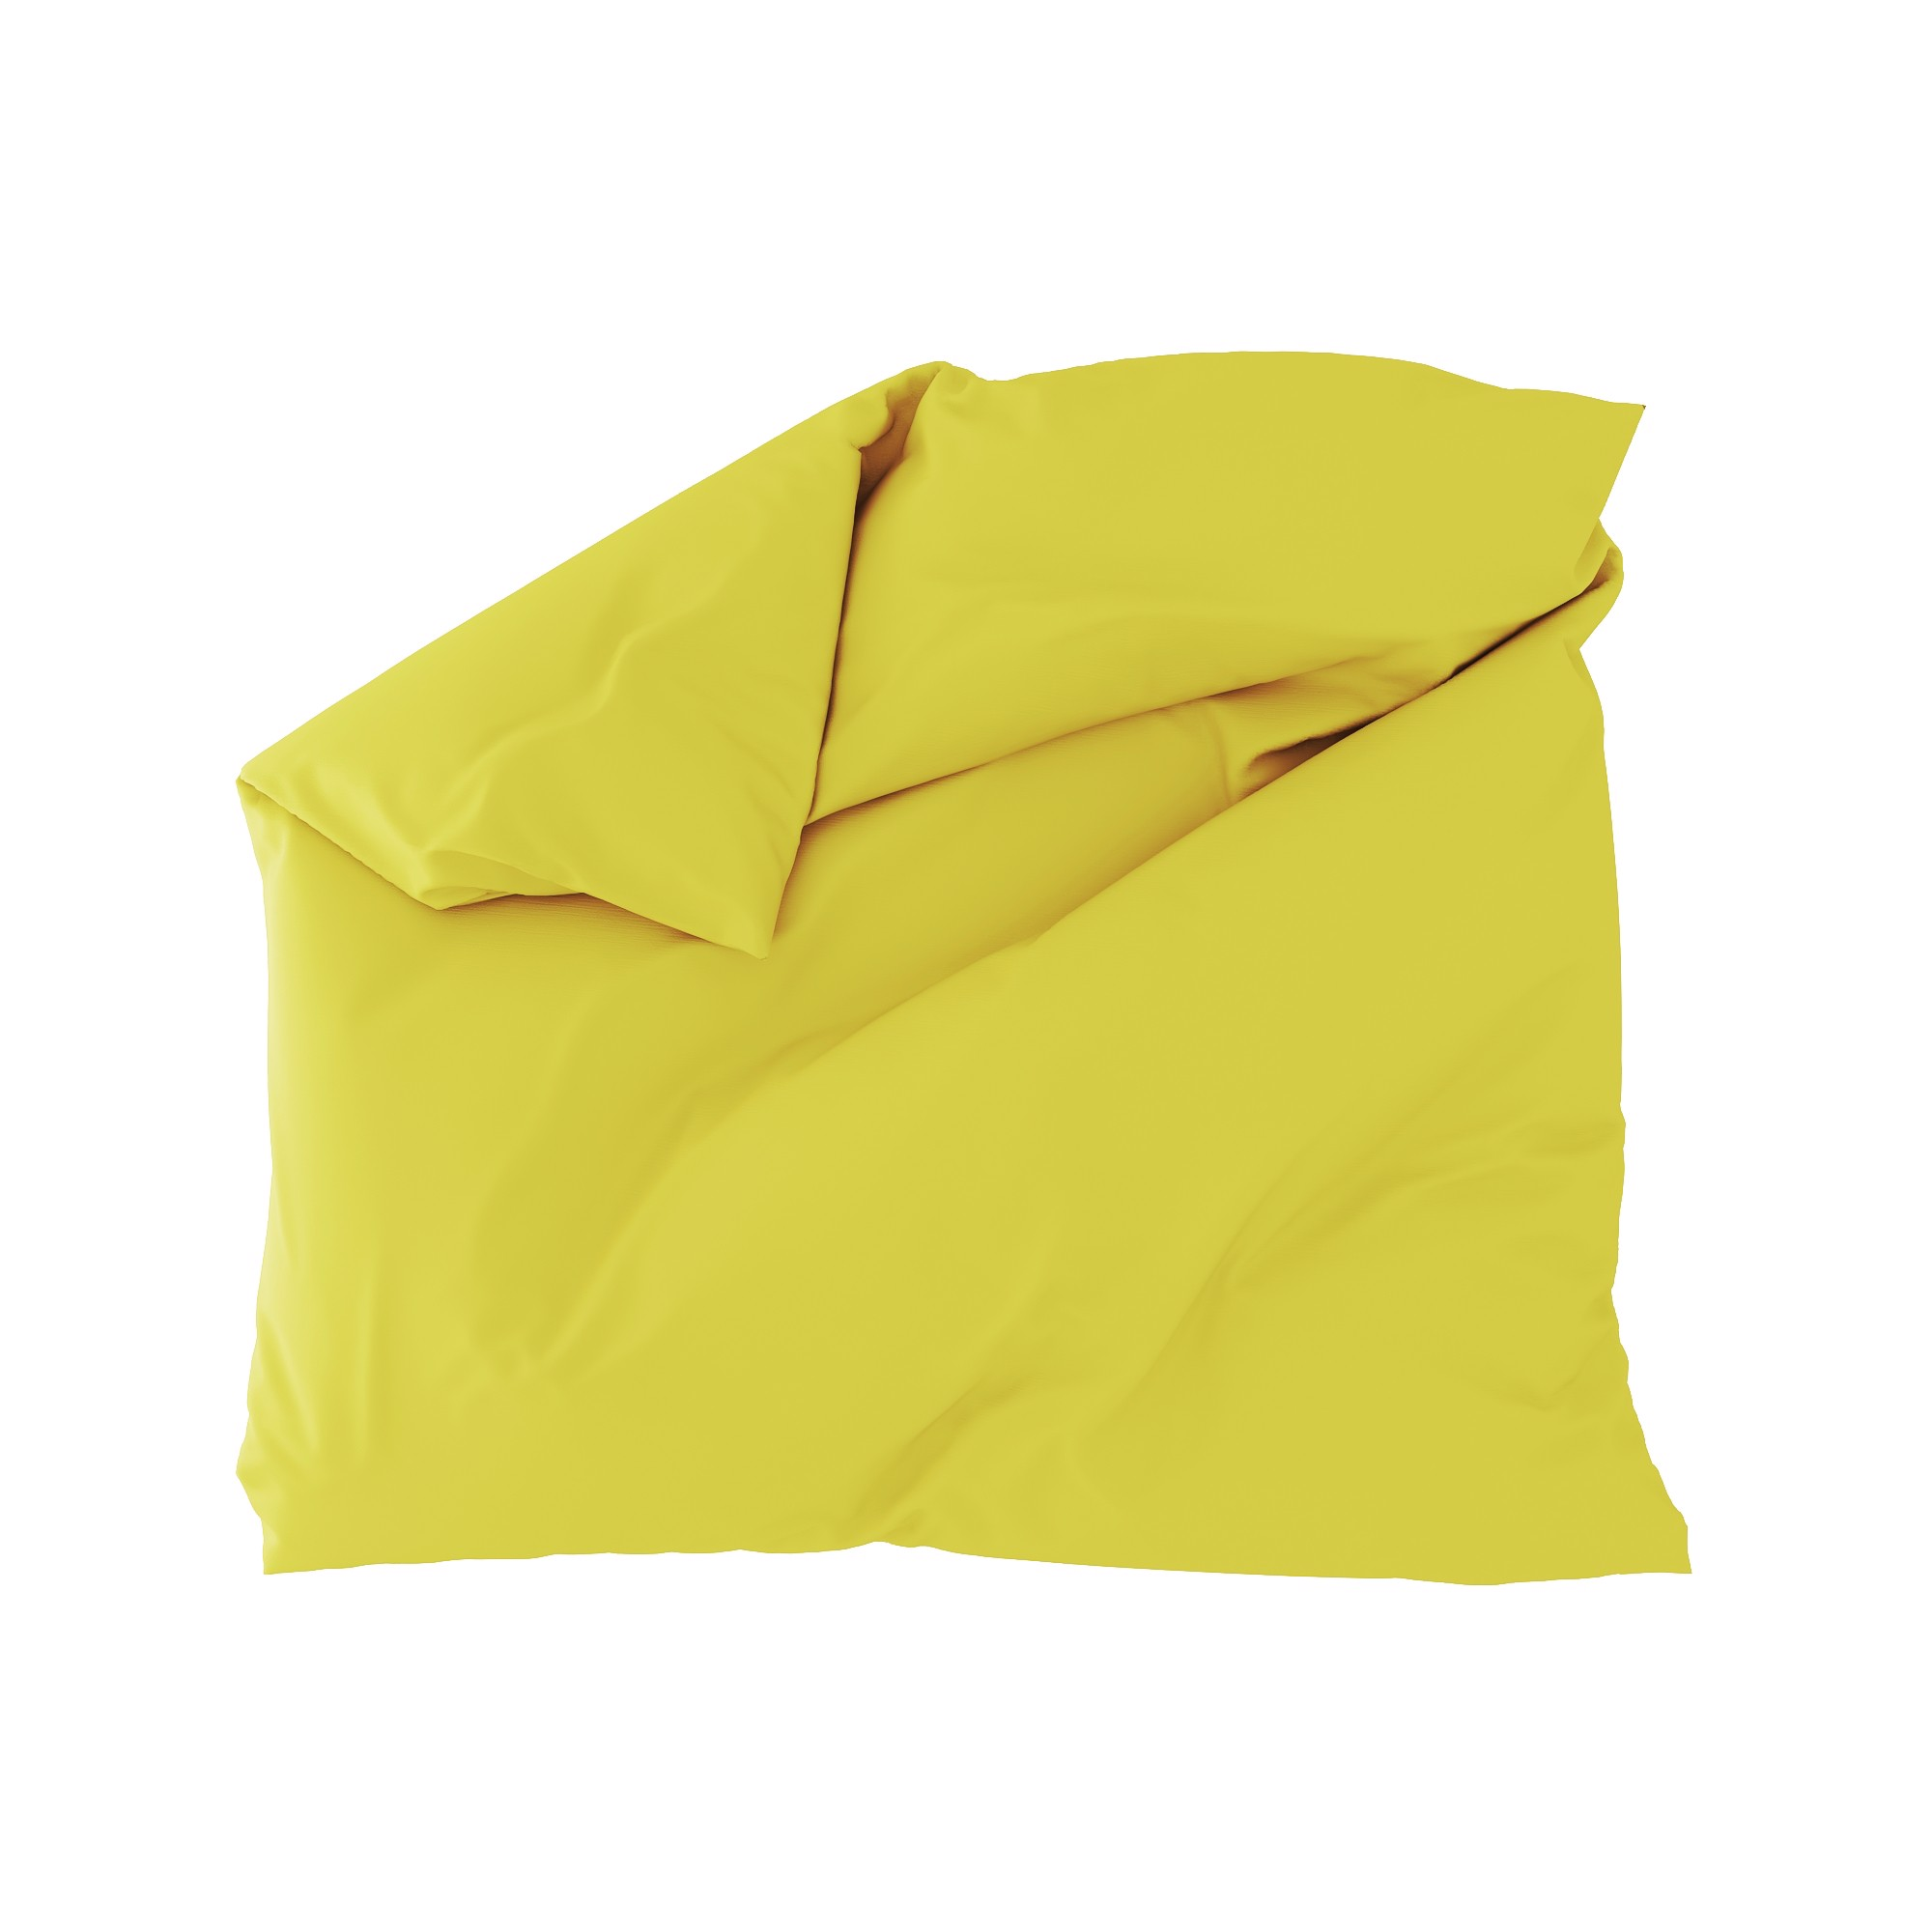 Standard duvet cover 16 Yellow